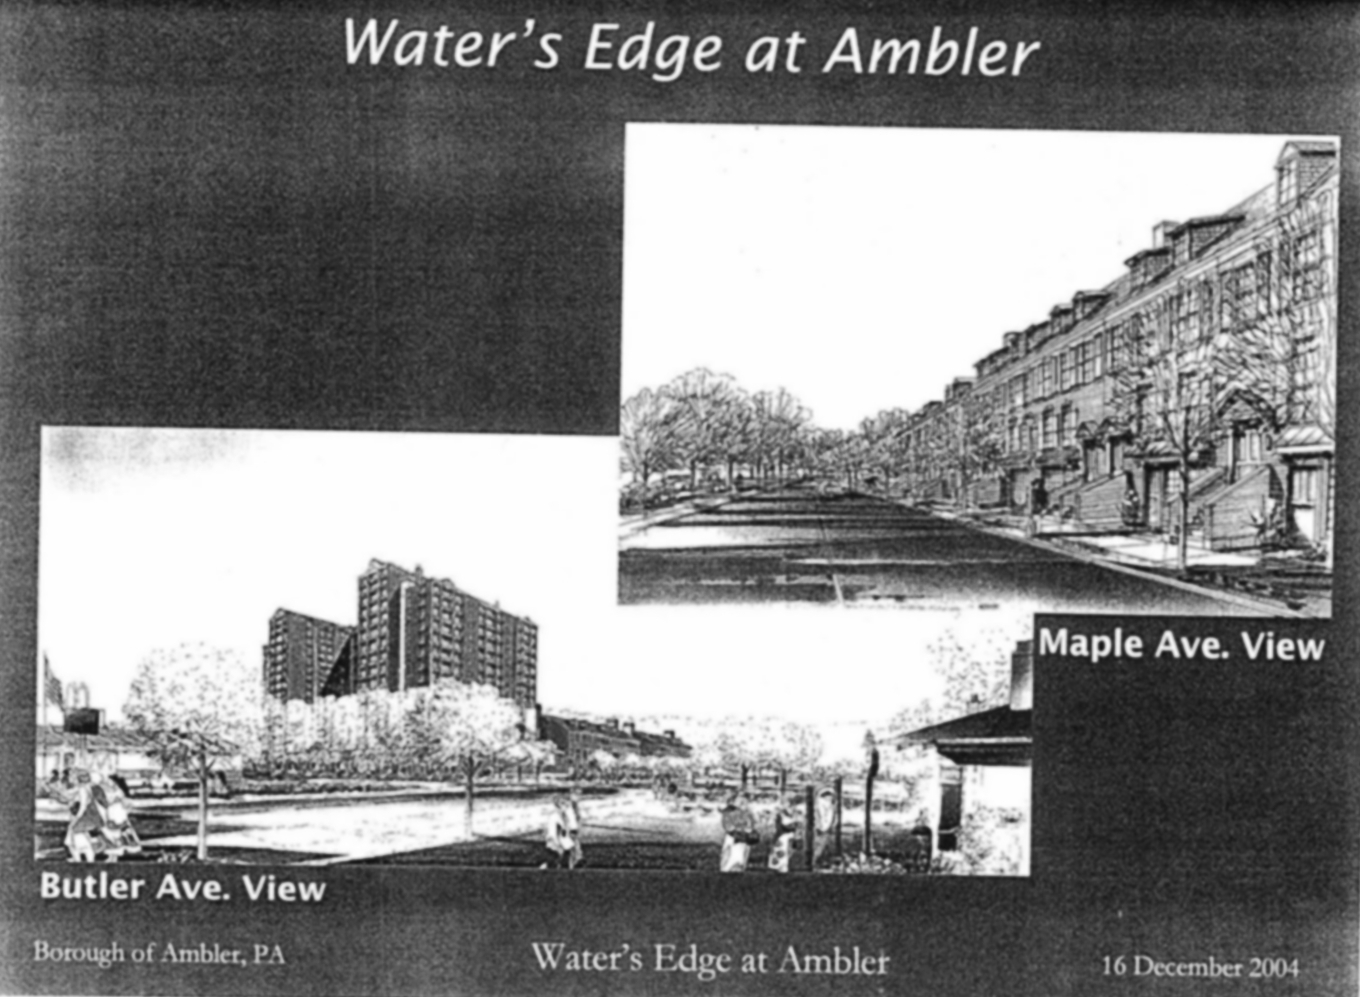 """""""Water's Edge at Ambler,"""" excerpt from 2004 high-rise proposal.   Kane Core, December 16, 2004. Courtesy of Tim Hughes."""